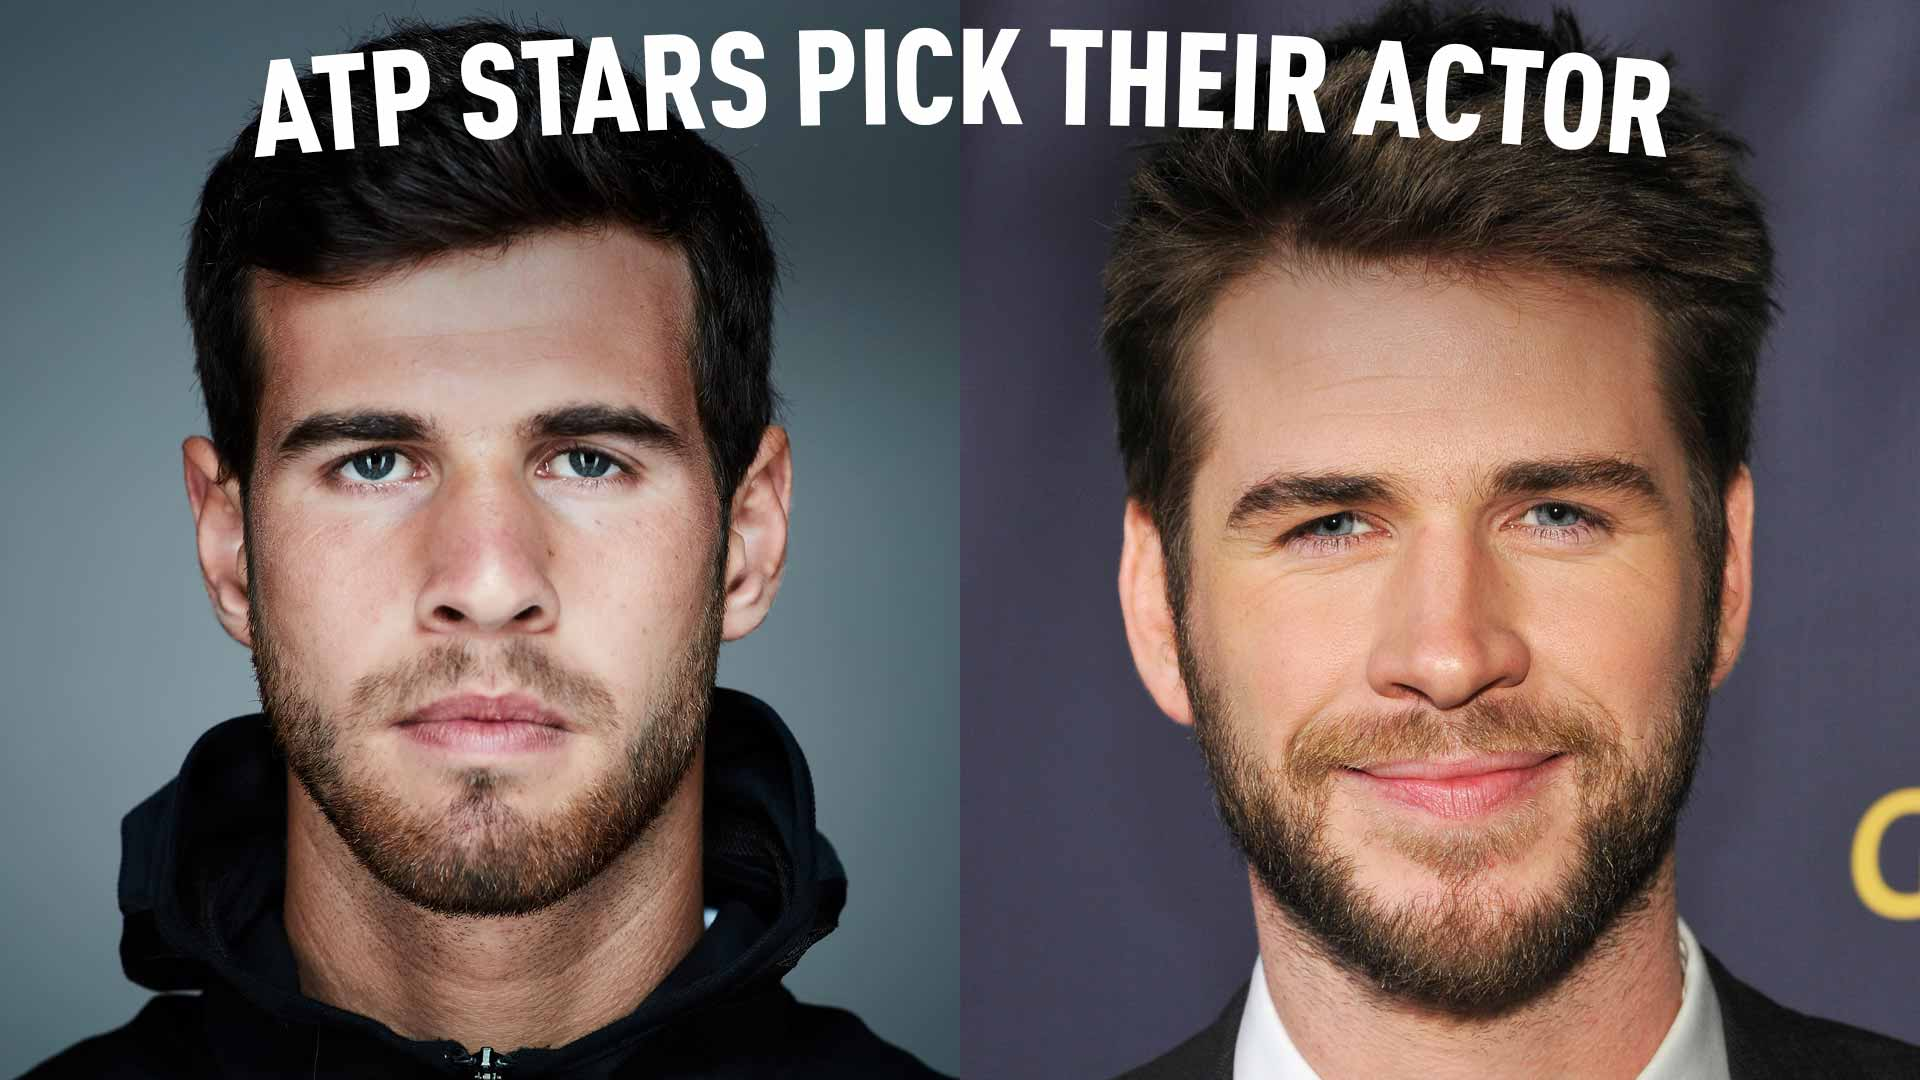 Khachanov Hemsworth